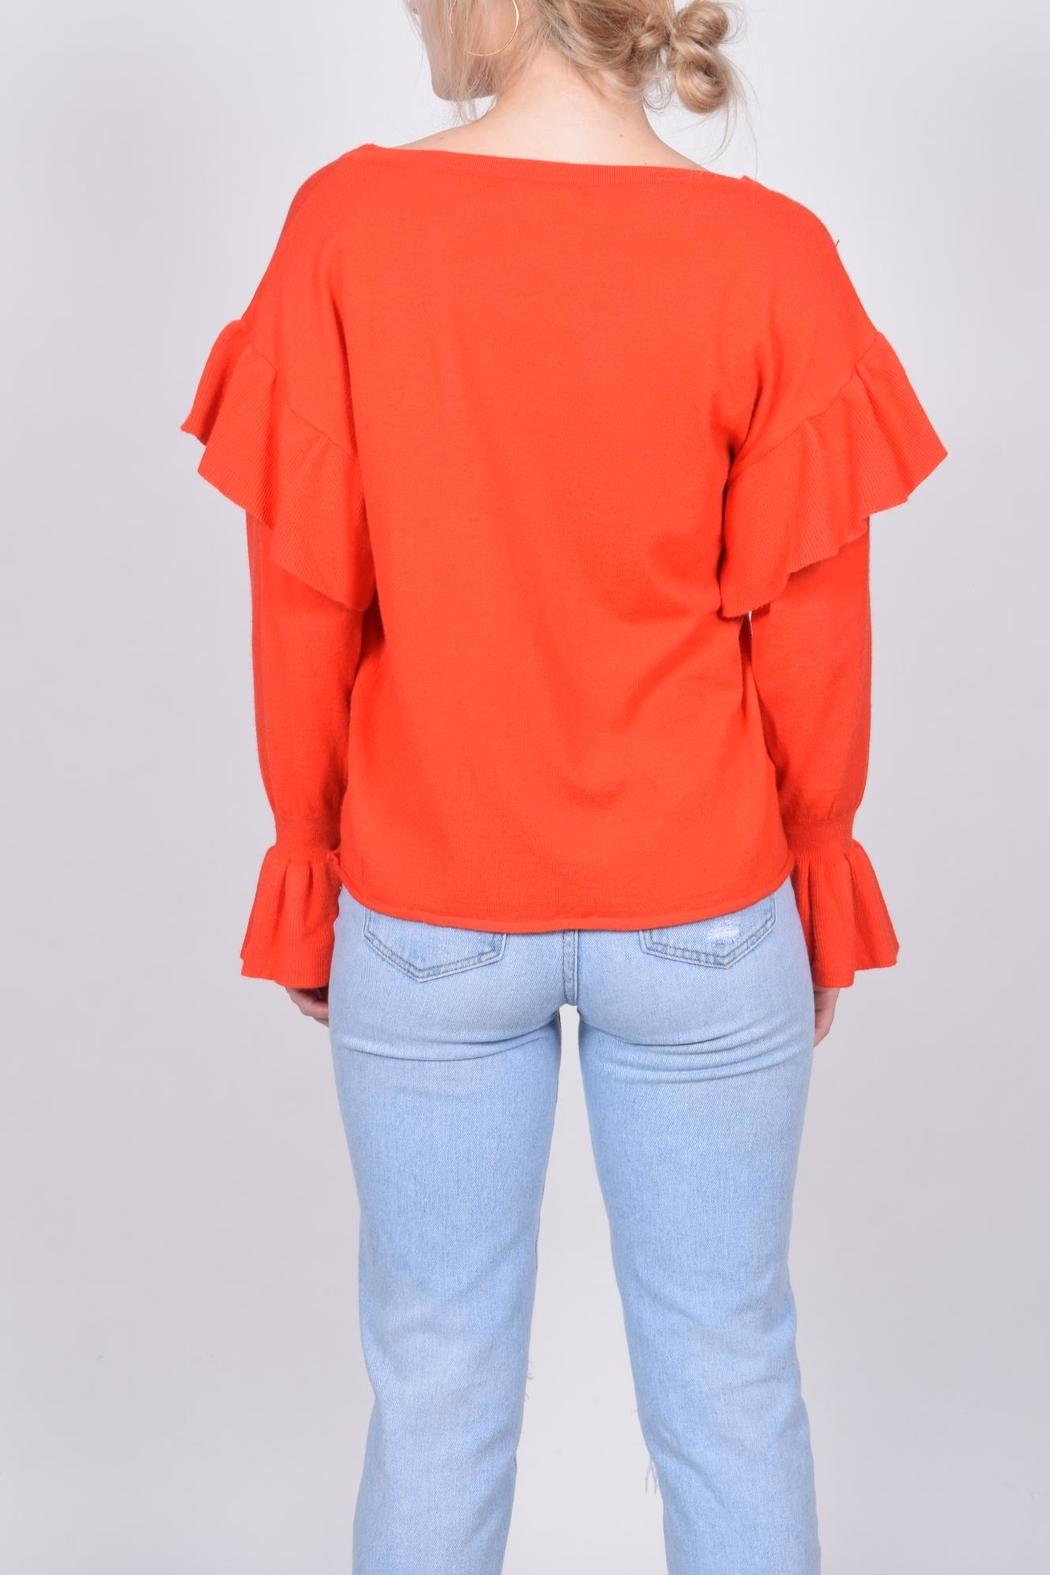 Unbranded Red Ruffle Sweater - Back Cropped Image